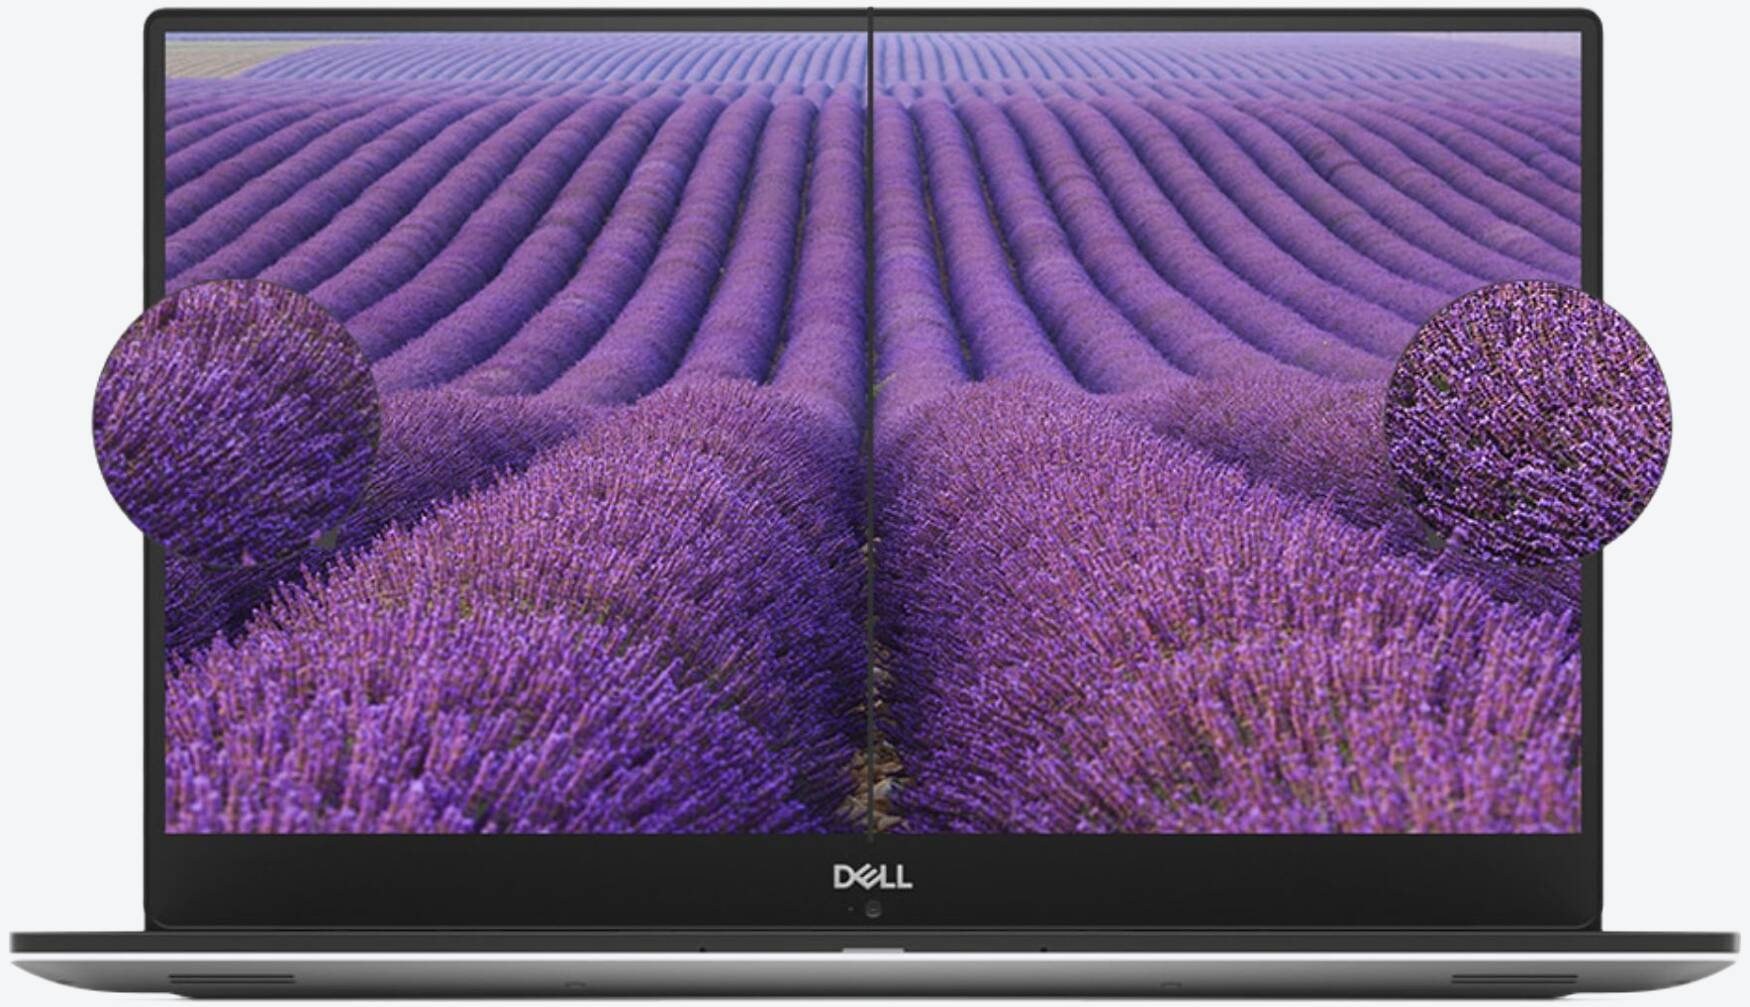 Dell XPS 15 (2018) 4K Touch 9570-V73RW